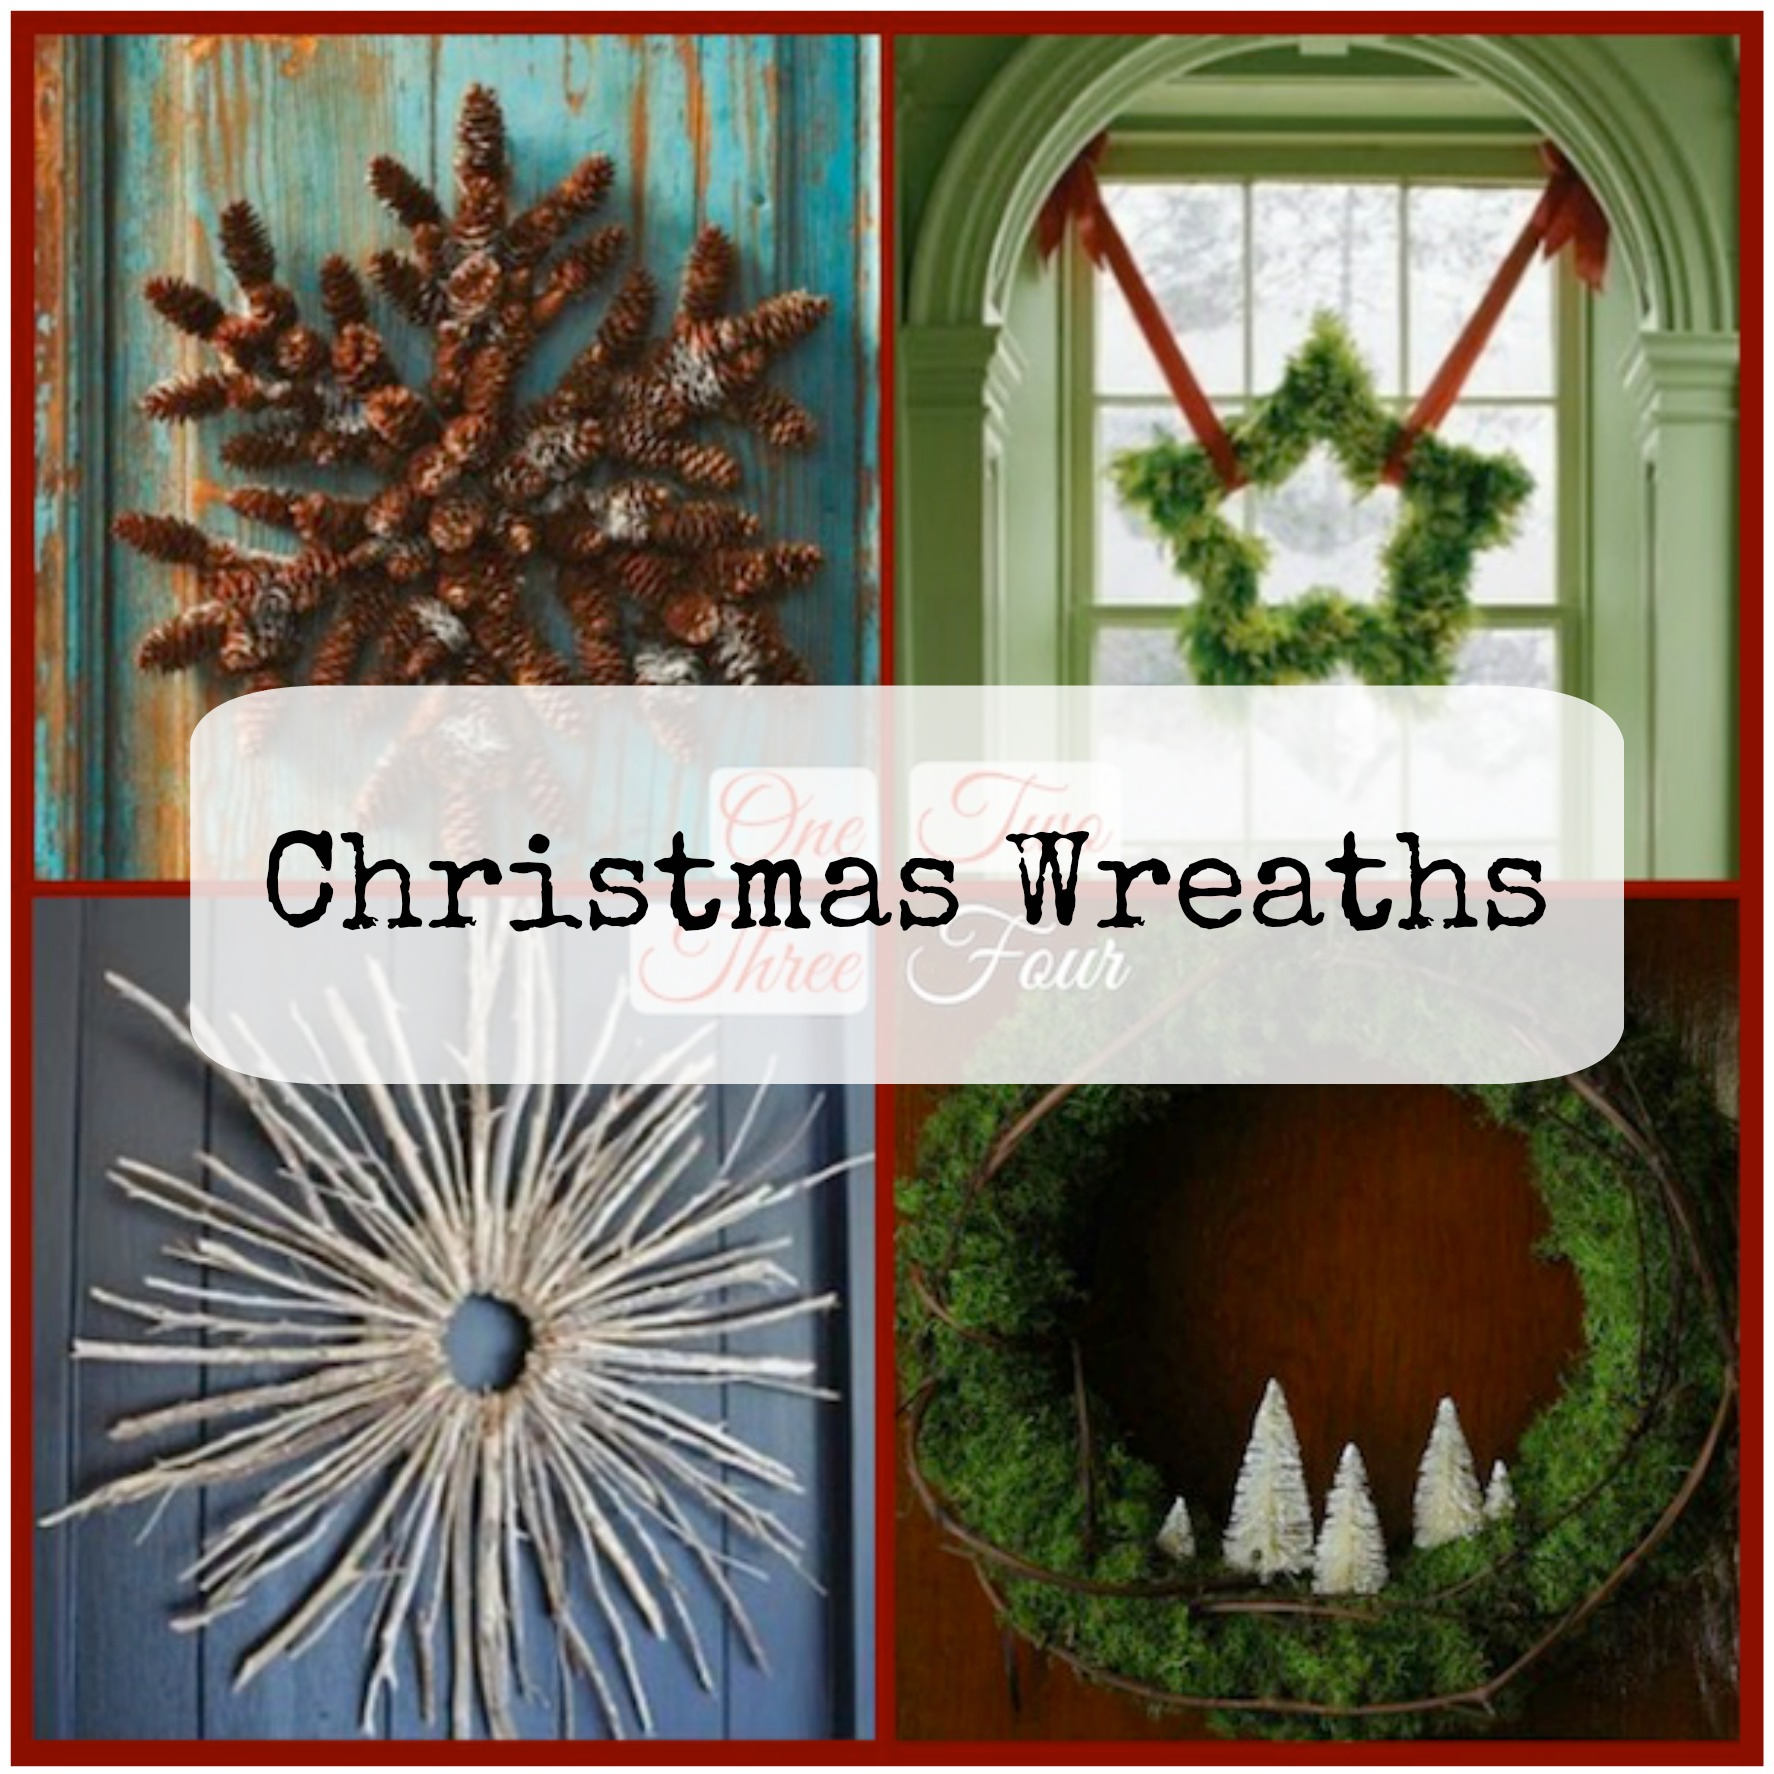 My Pinterest Picks: Christmas Wreaths